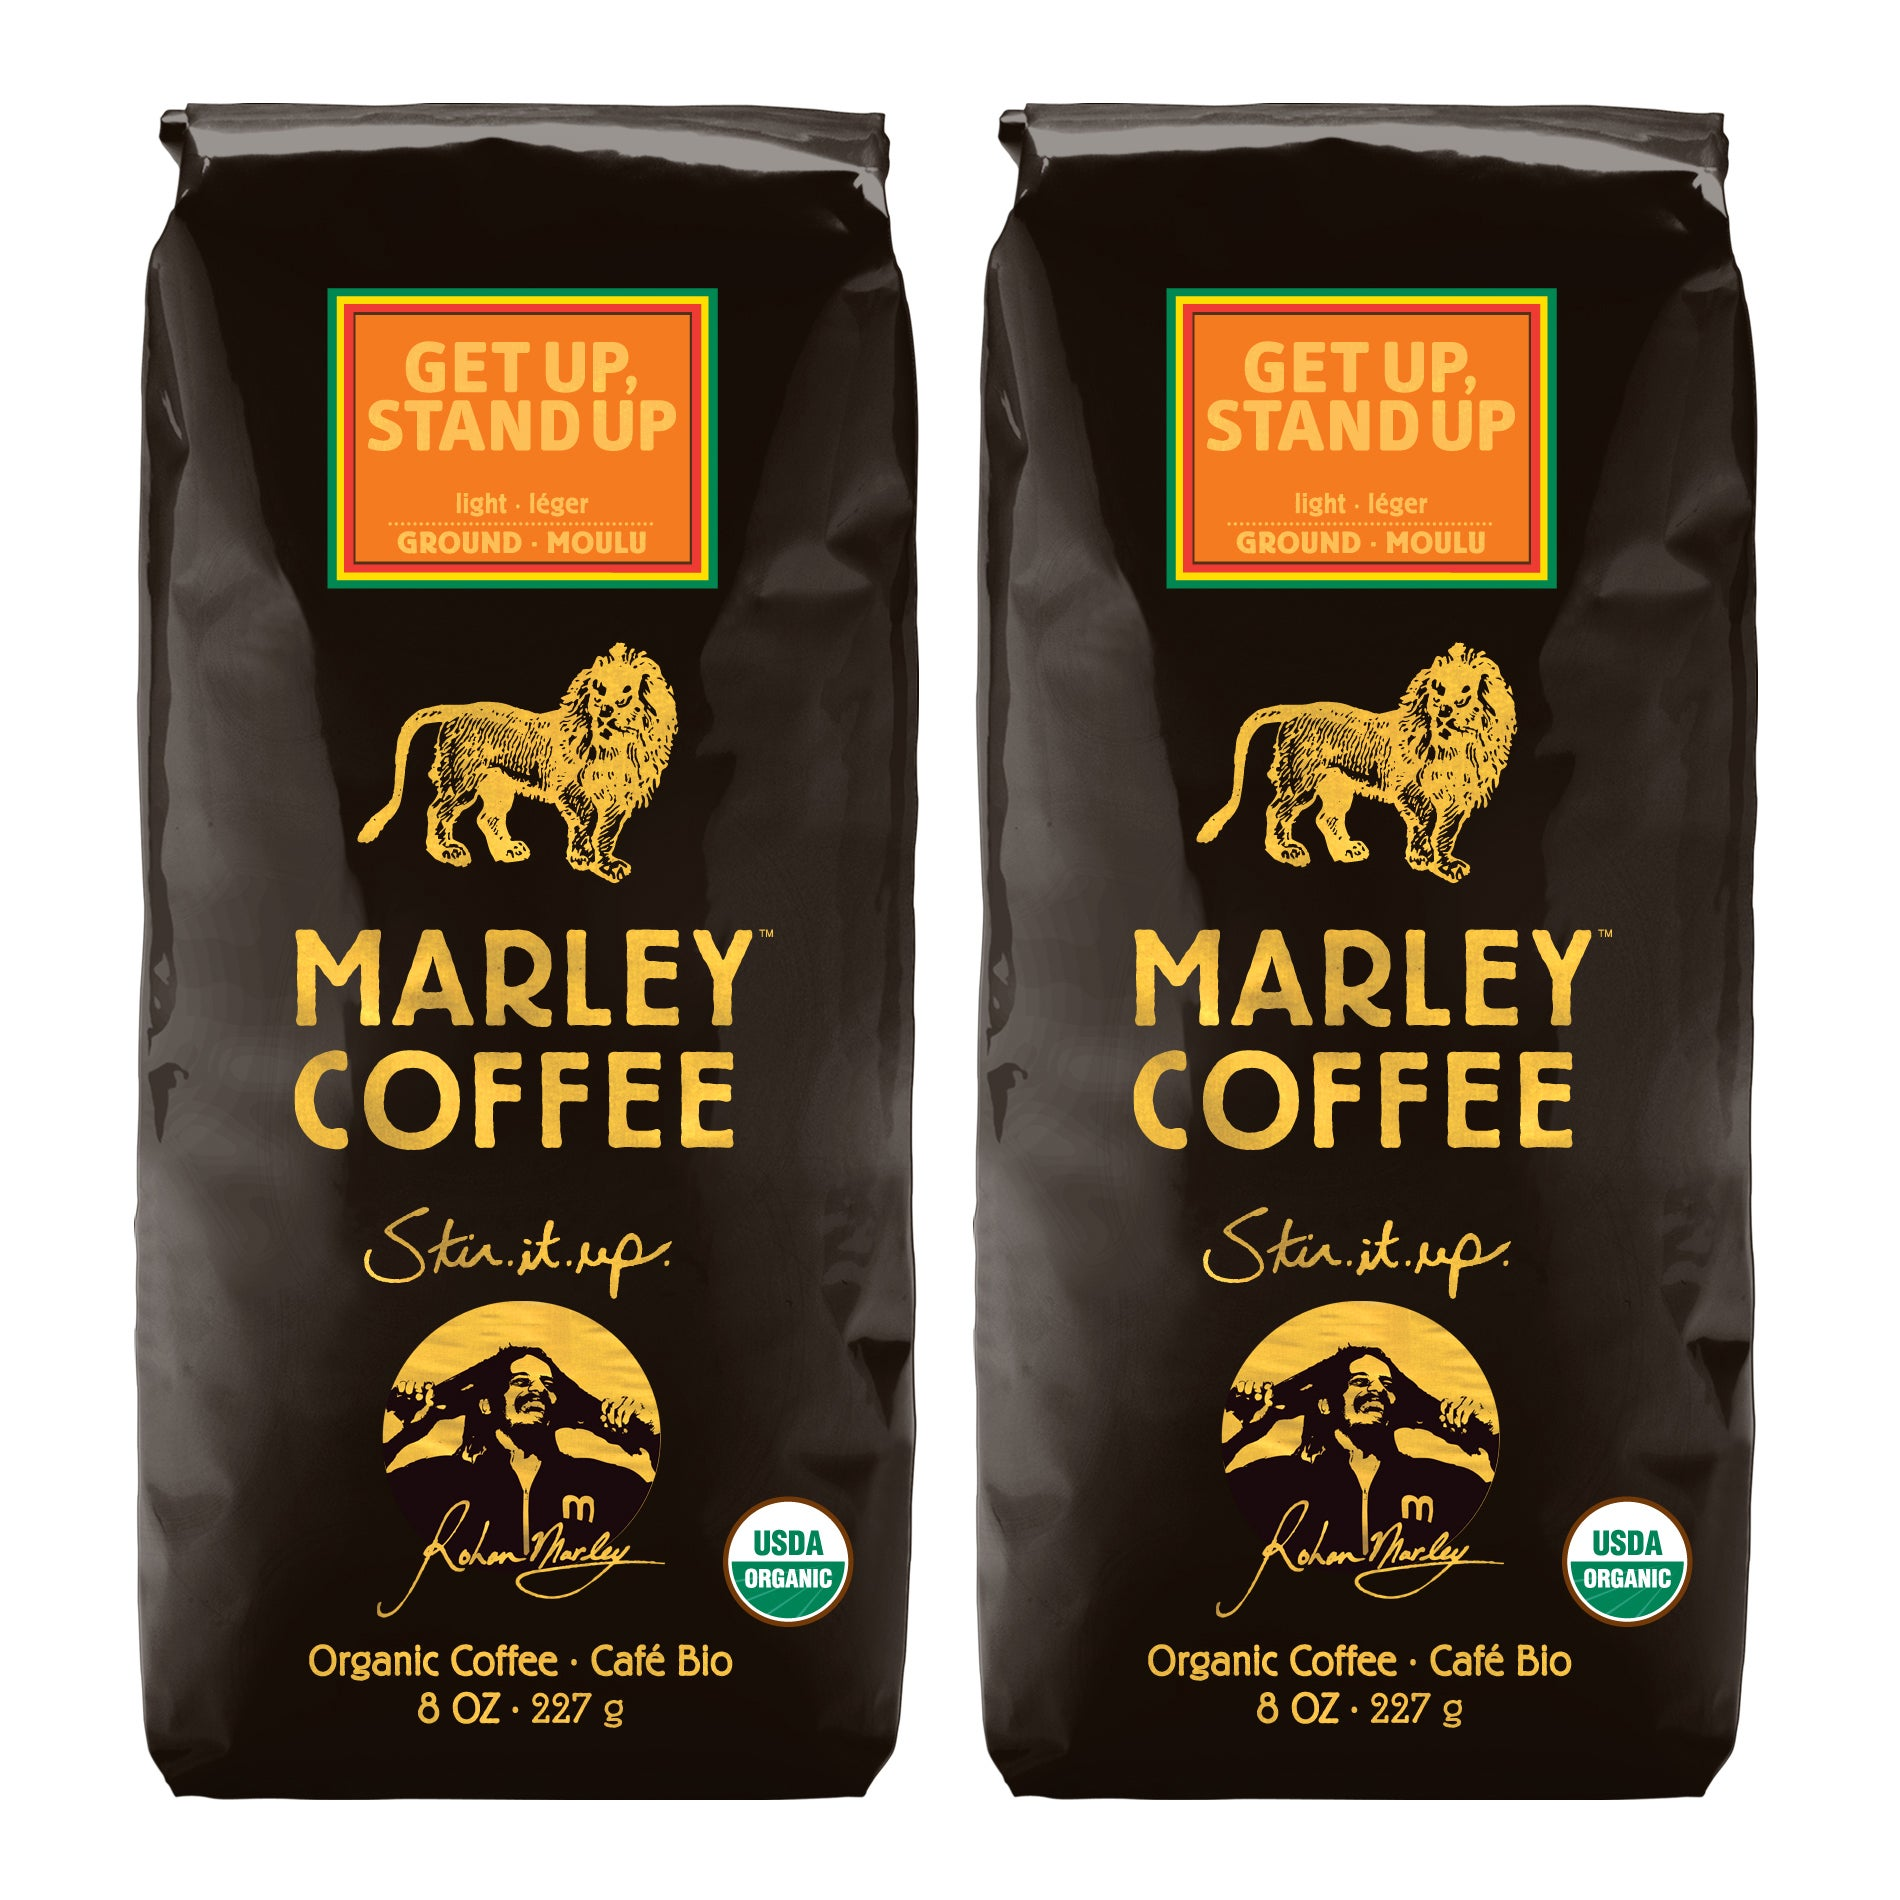 Marley Coffee Get Up Stand Up Ground Coffee (1 pound)